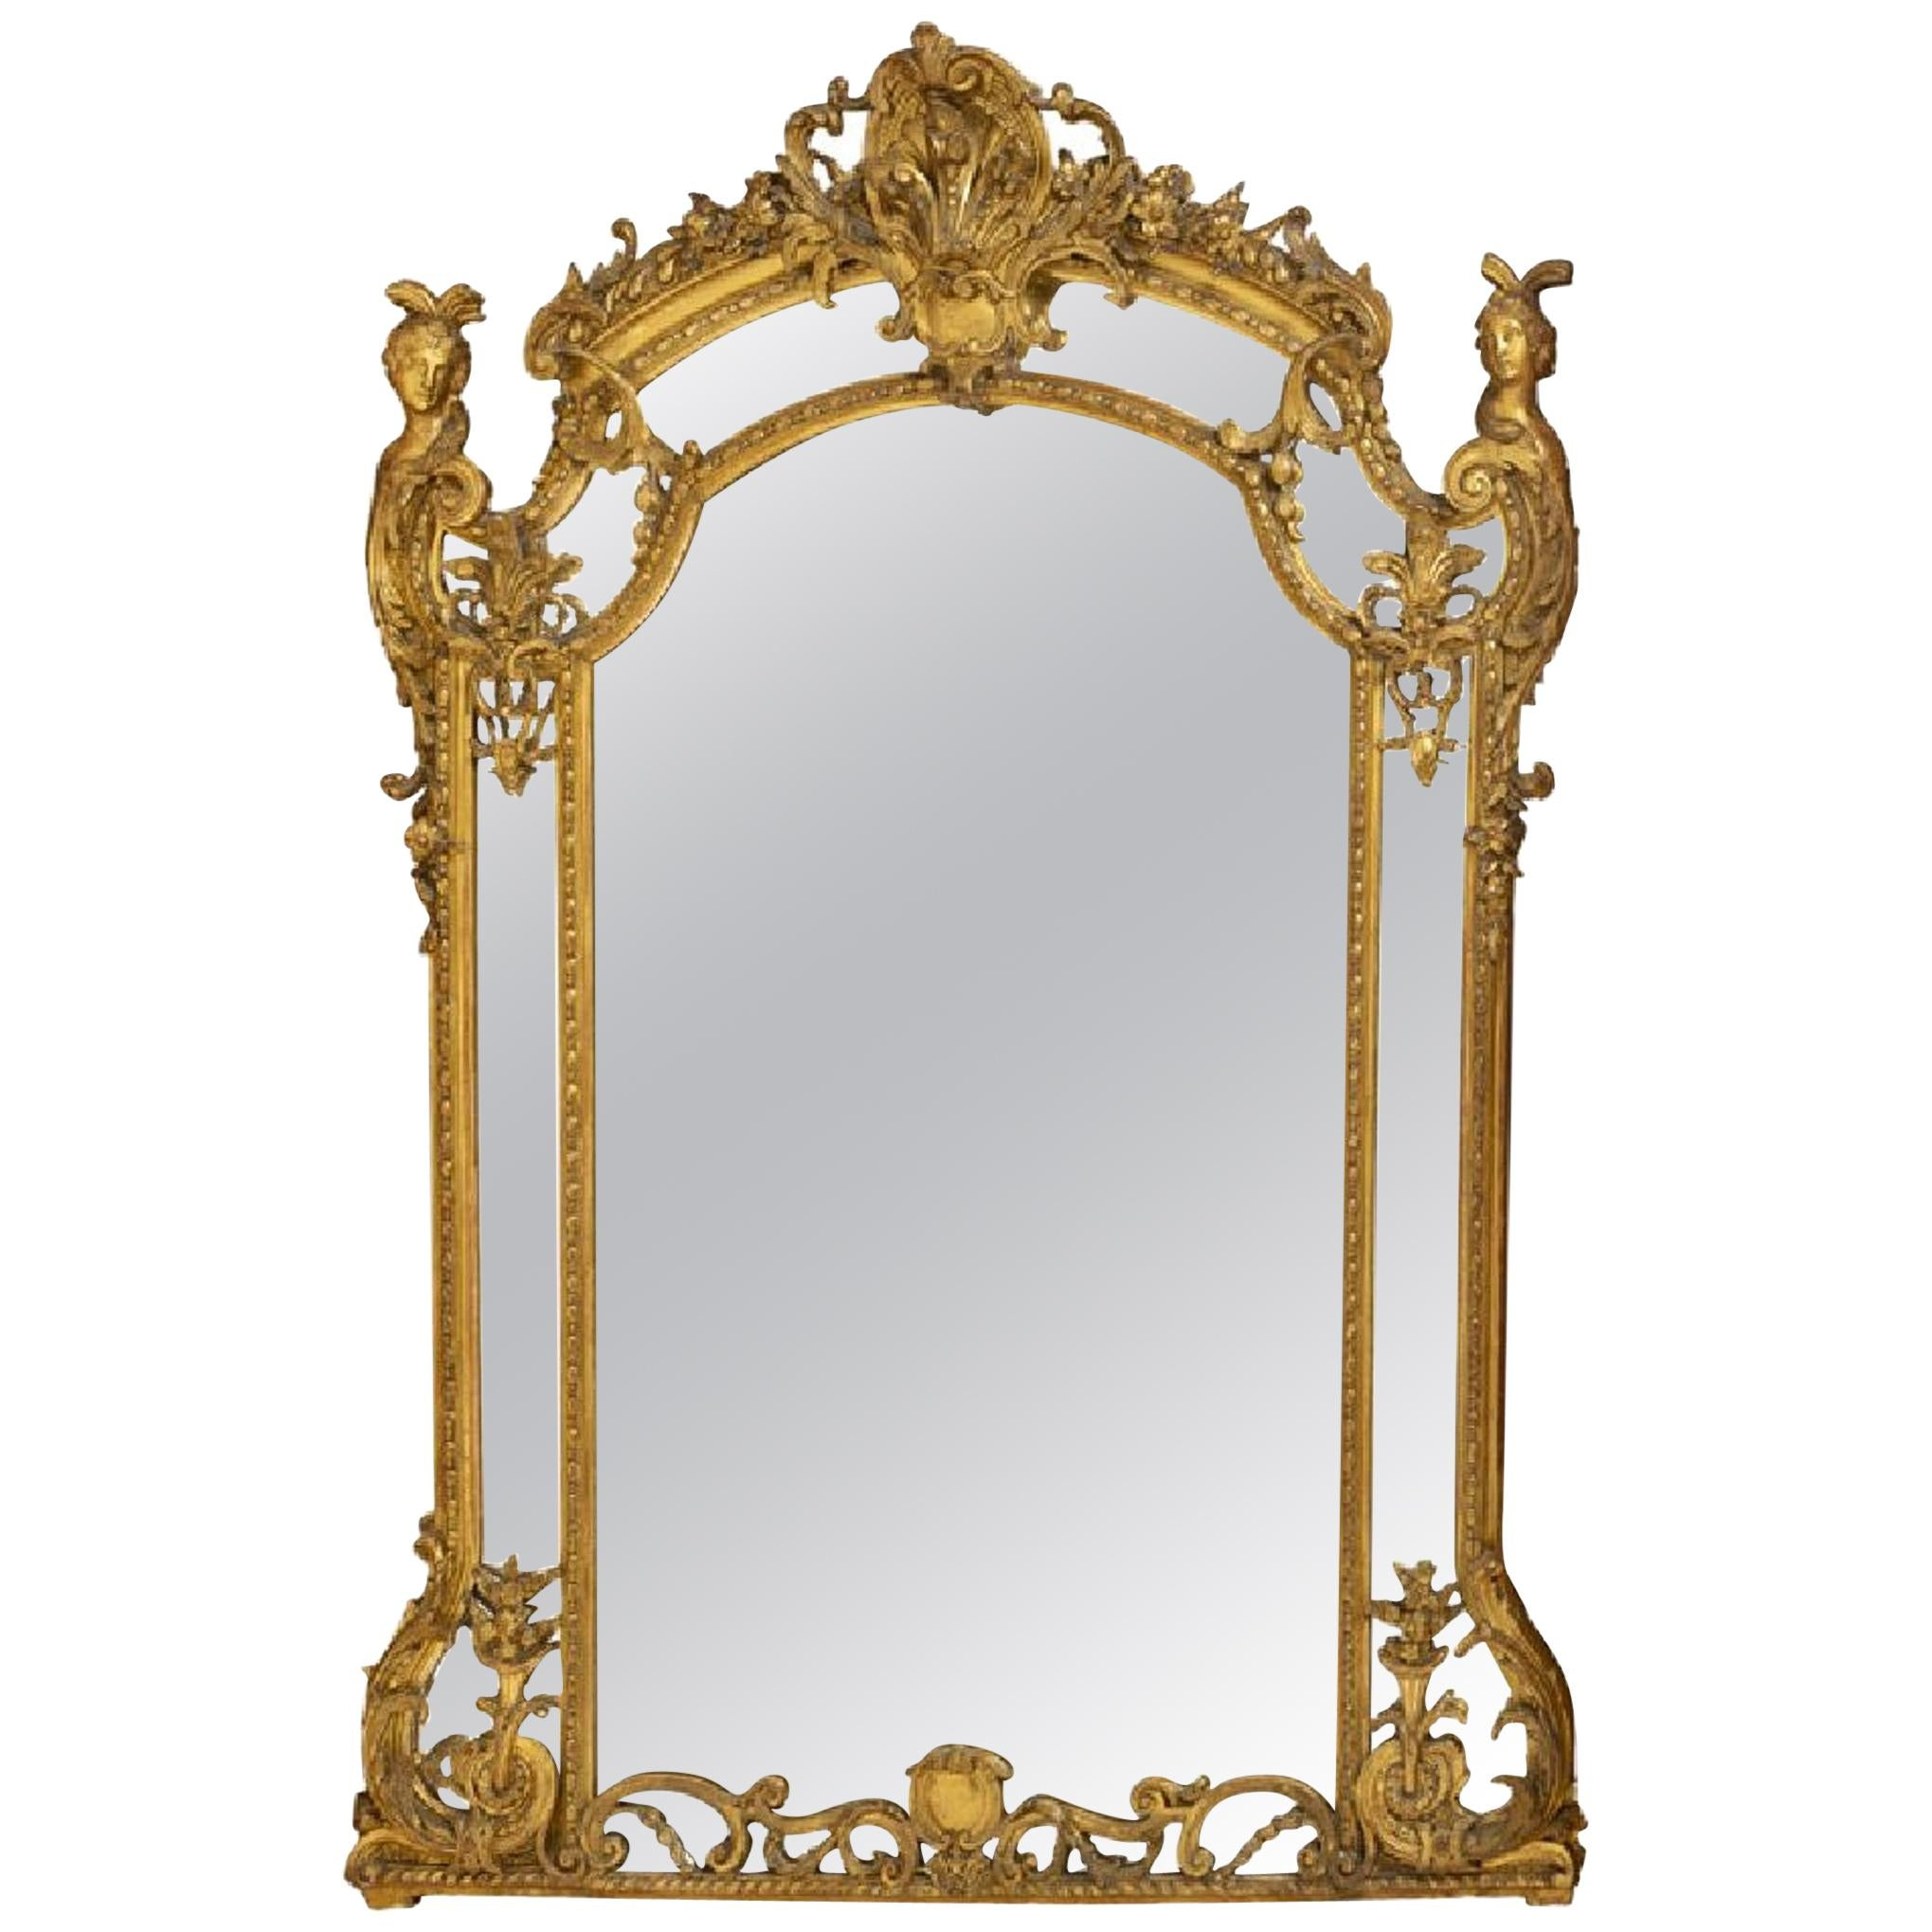 French Regence Style Gilded Figural Mirror, 19th Century